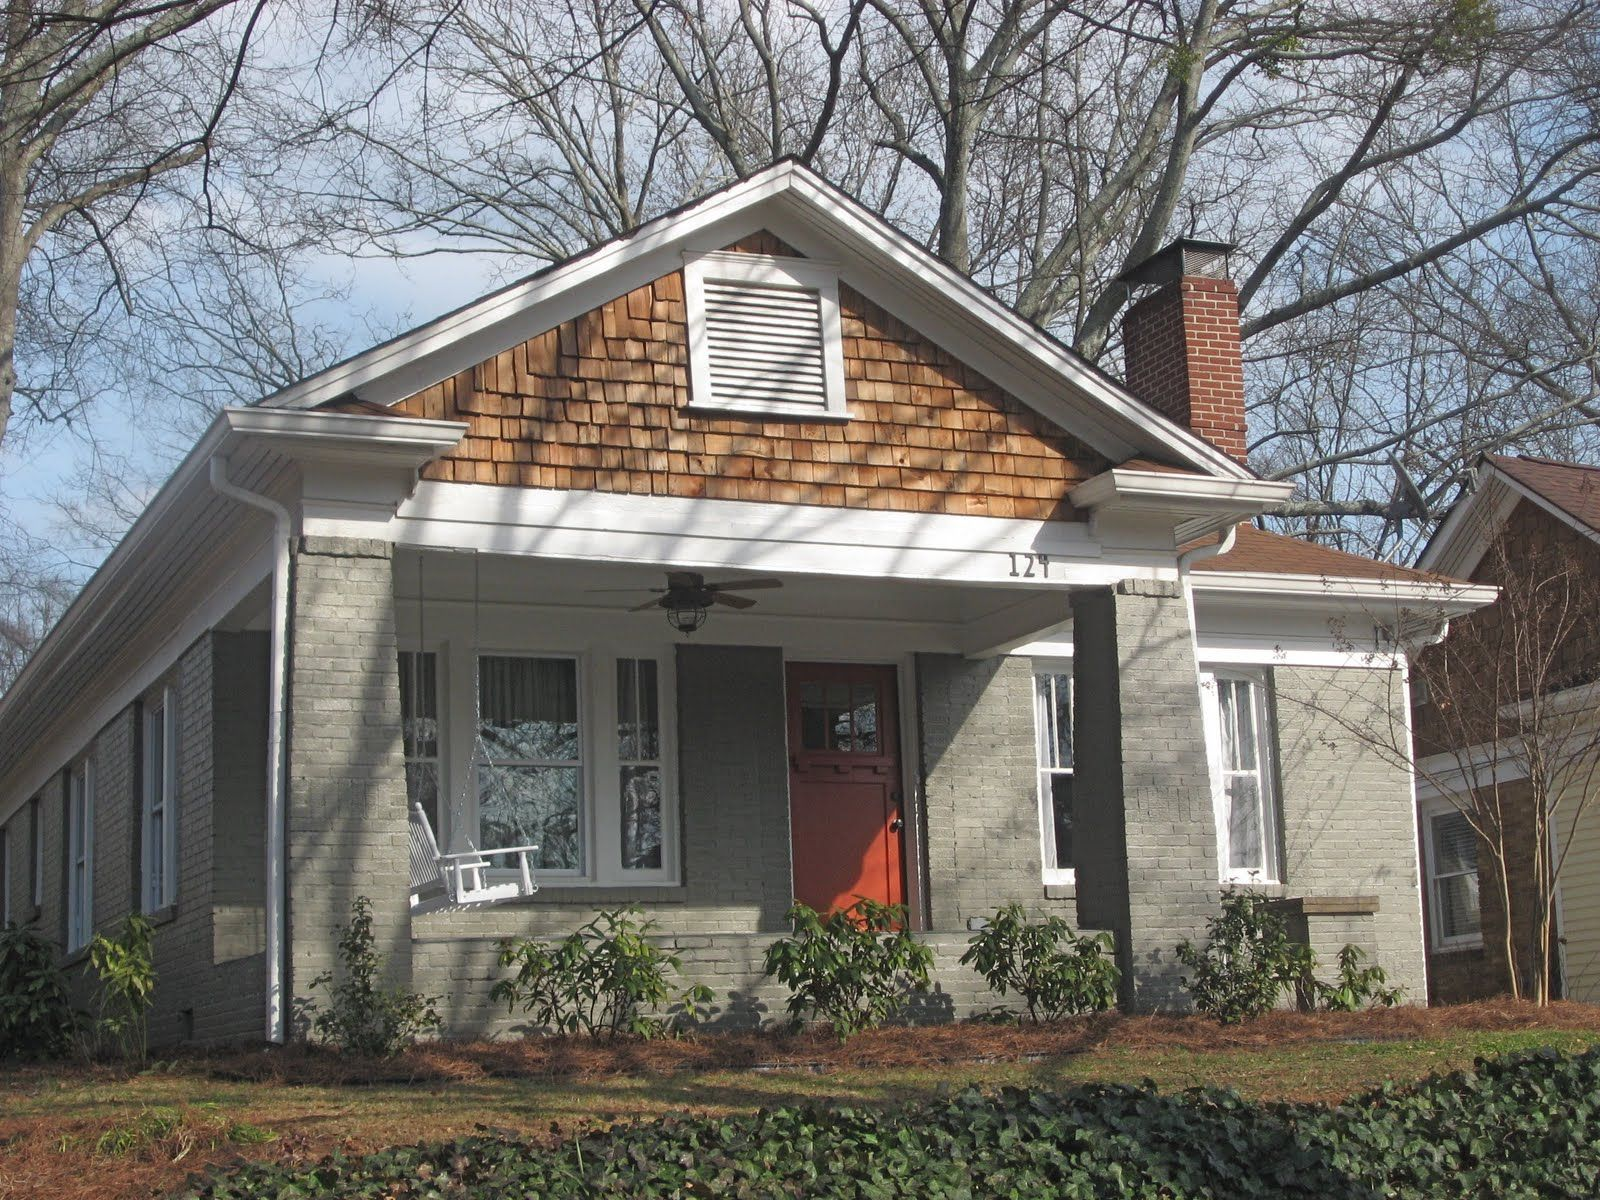 Warm gray with white trim and brown roof Like the orange door